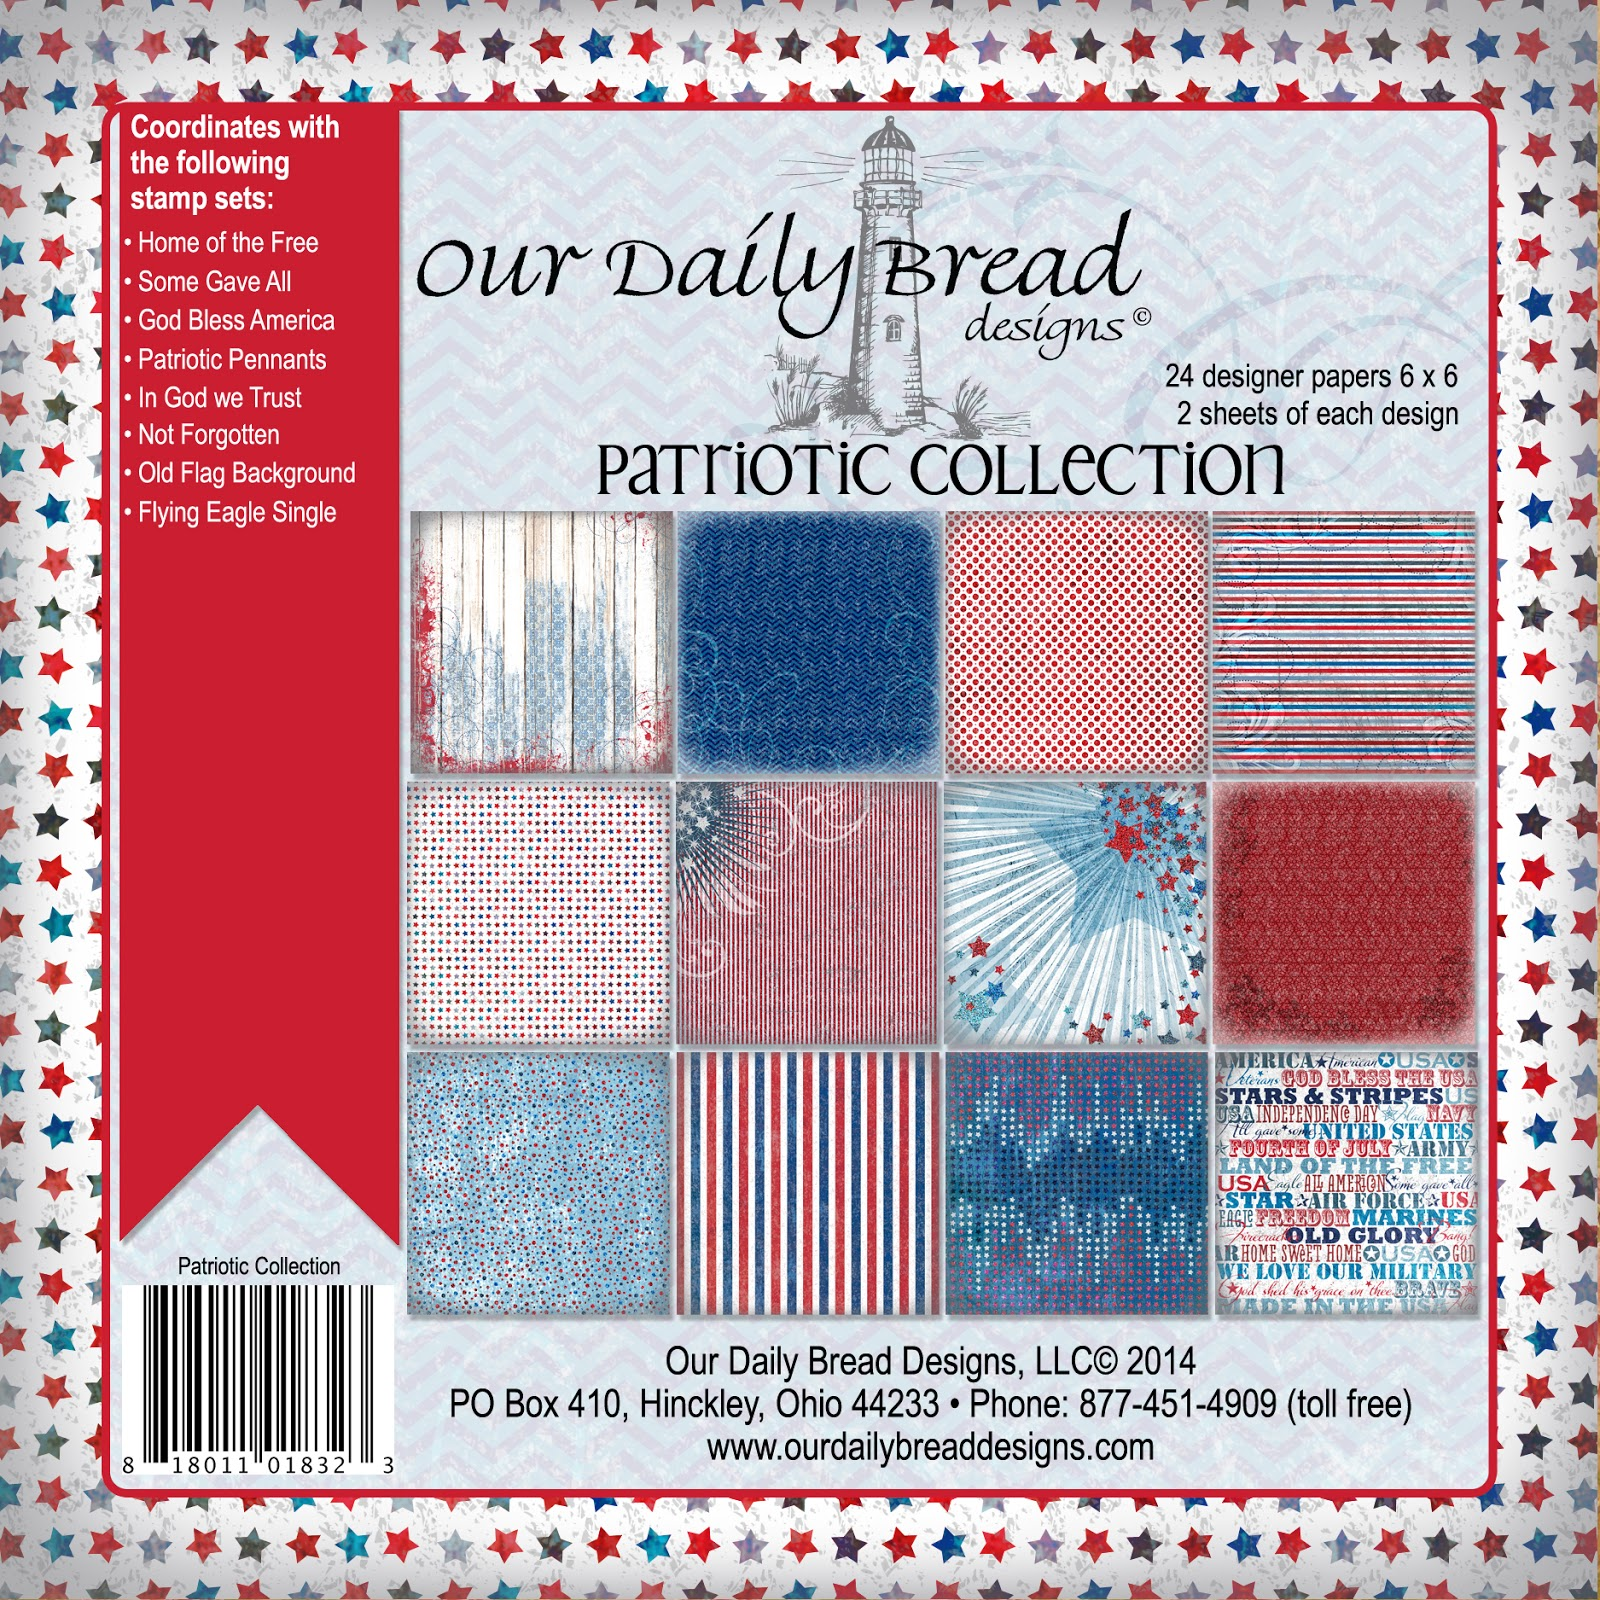 ODBD Patriotic Paper Collection